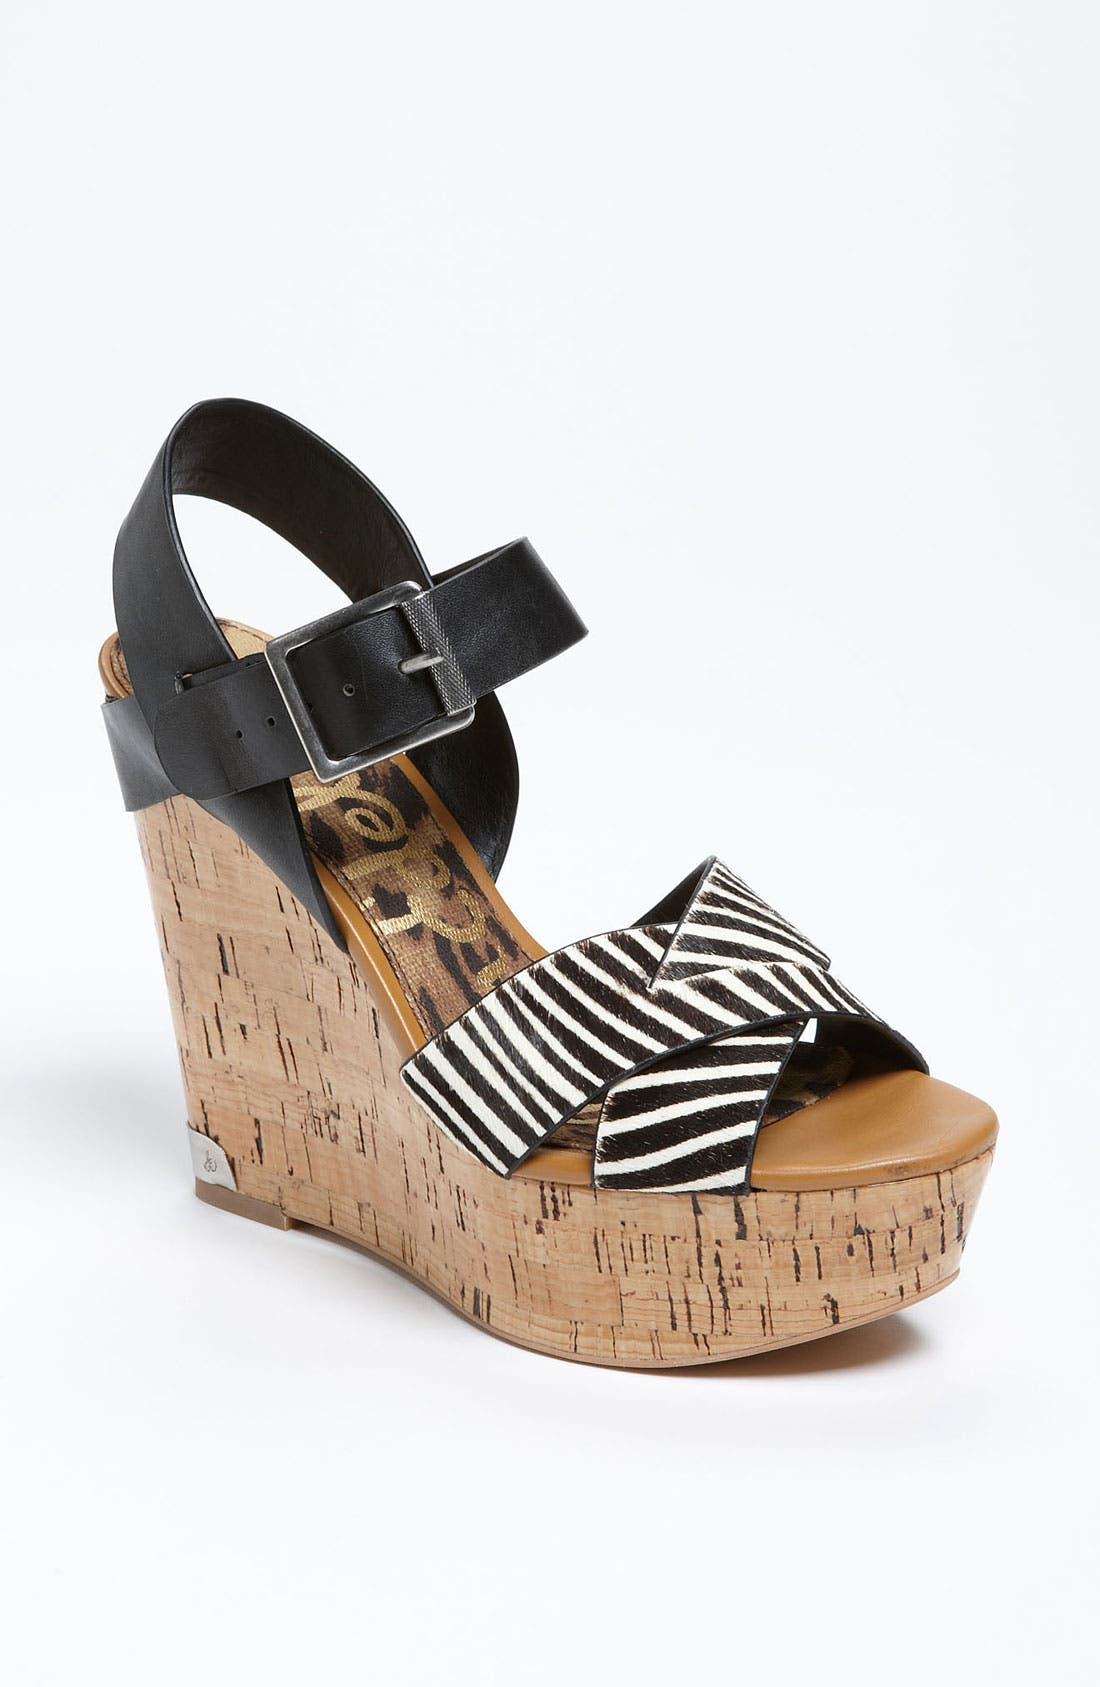 Alternate Image 1 Selected - Sam Edelman 'Sasha' Wedge Sandal